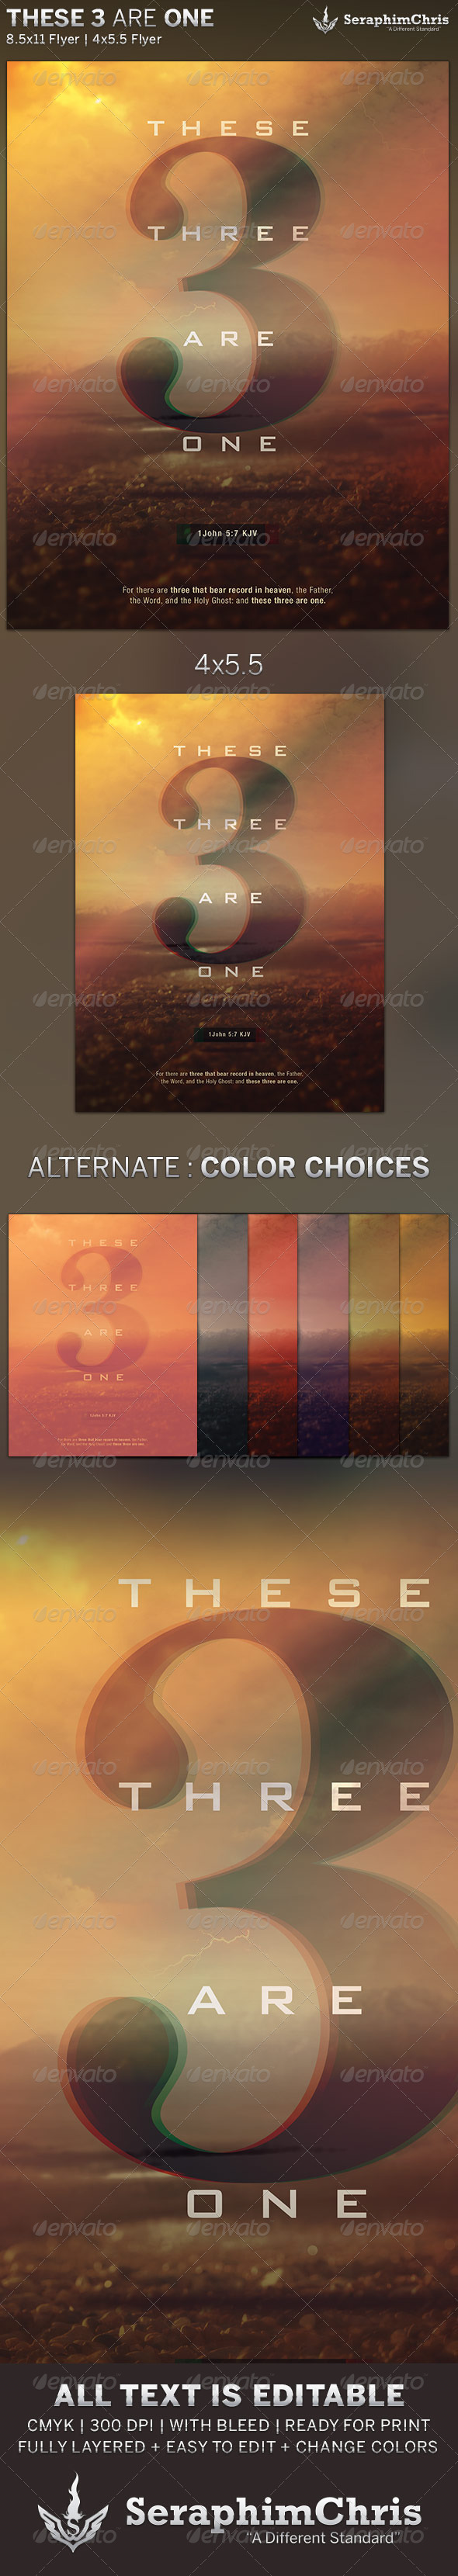 GraphicRiver These Three are One Church Flyer Template 5851320